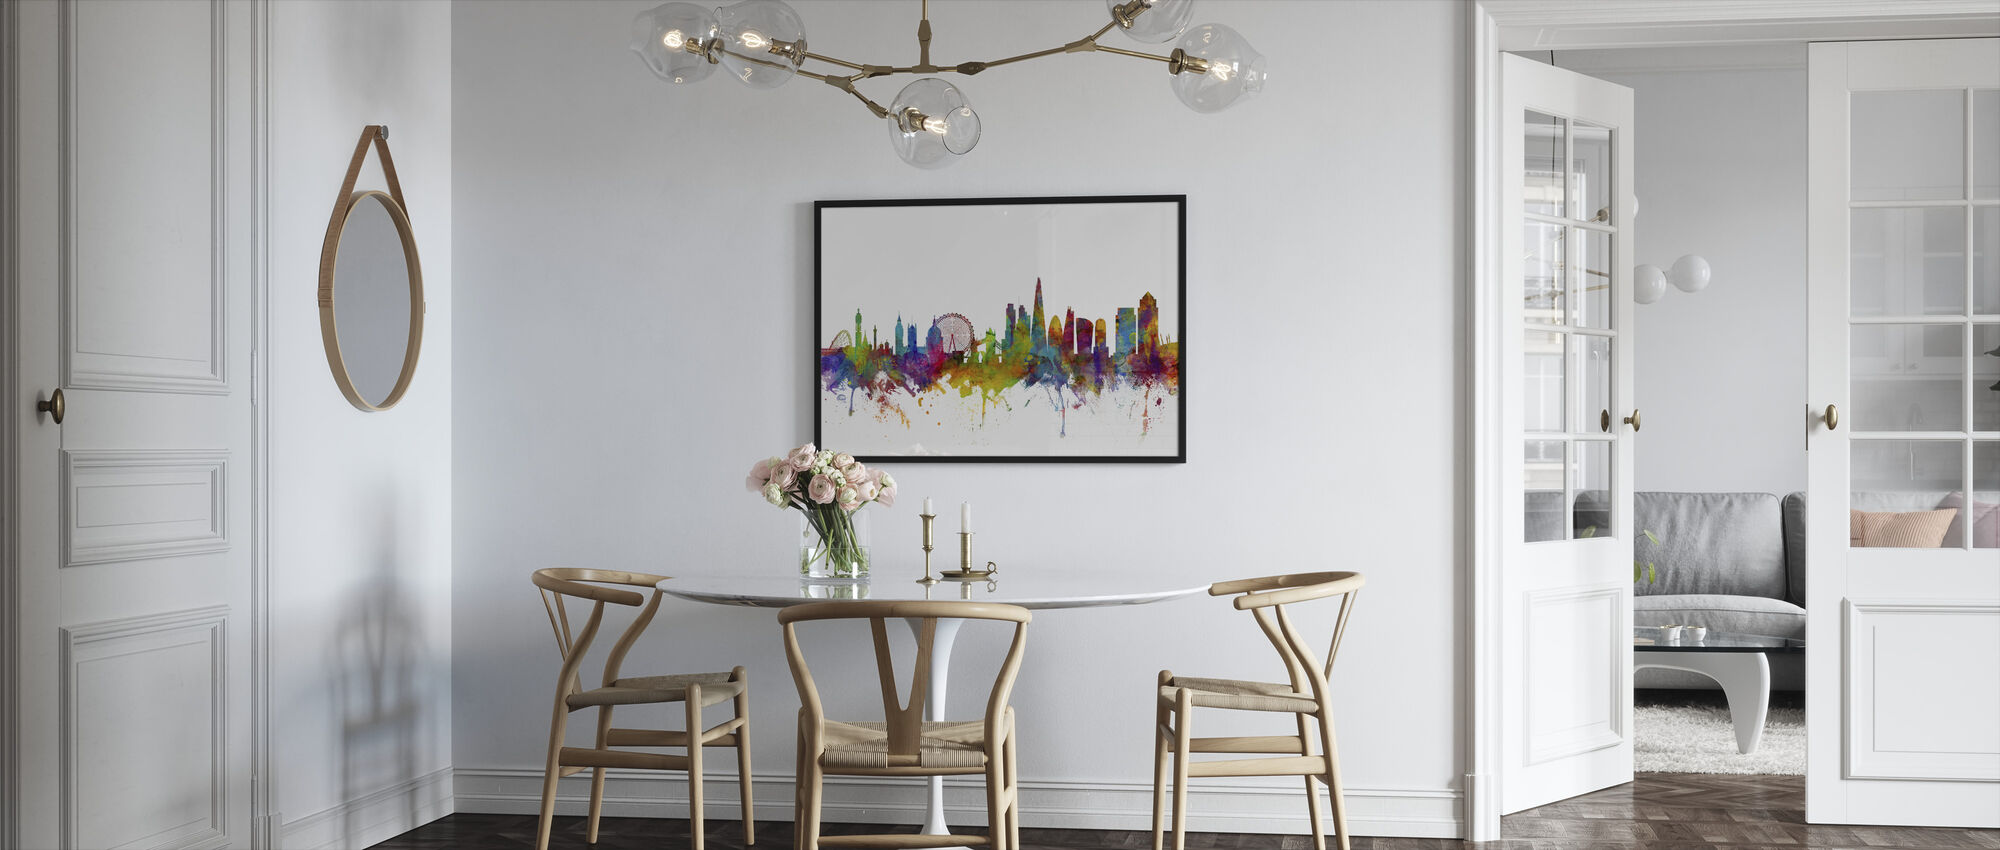 London Canary Wharf skyline - Framed print - Kitchen